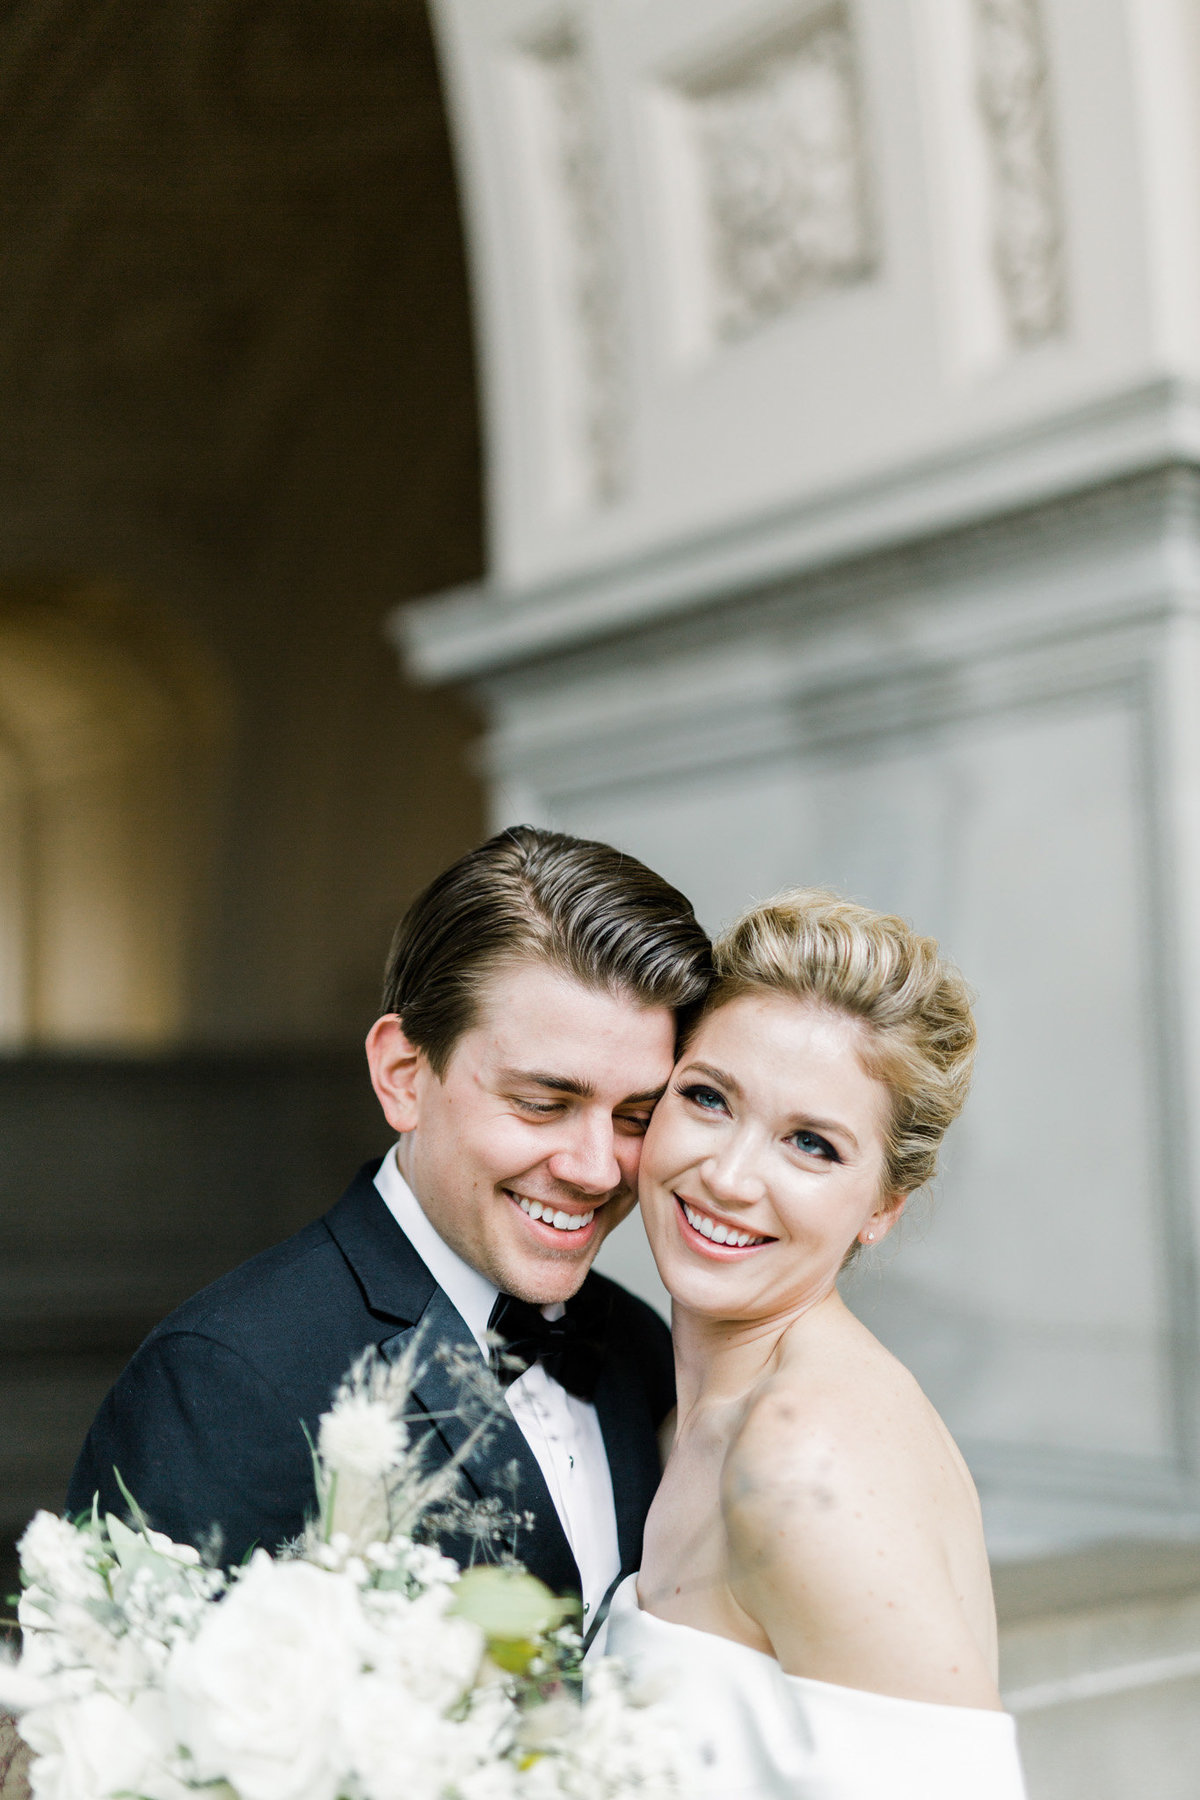 SanFranciscoCityHallWeddingPhotographer_SanFranciscoCityHallWedding_2019-Andrew_and_Ada_Photography-562